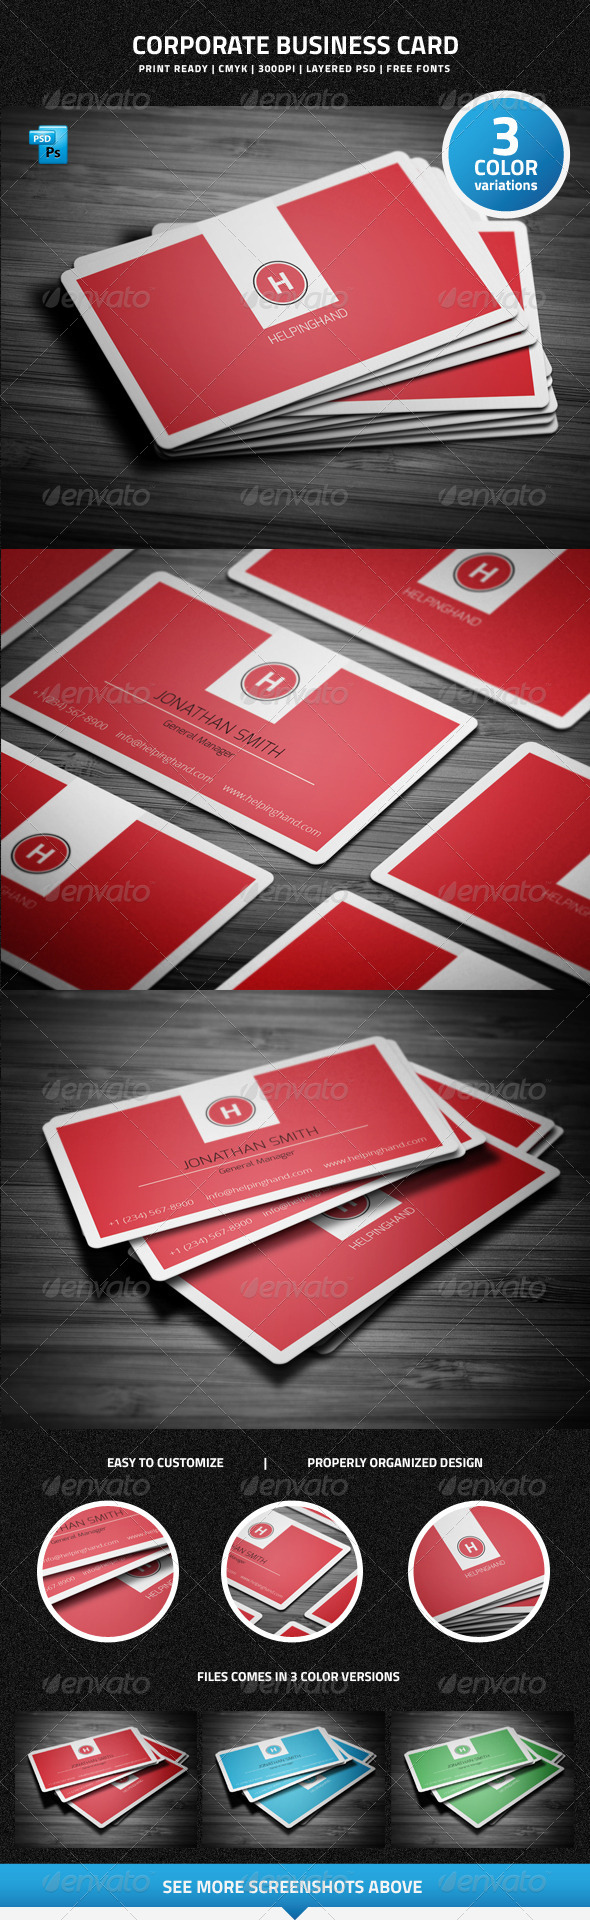 Corporate Business Card - 23 - Corporate Business Cards